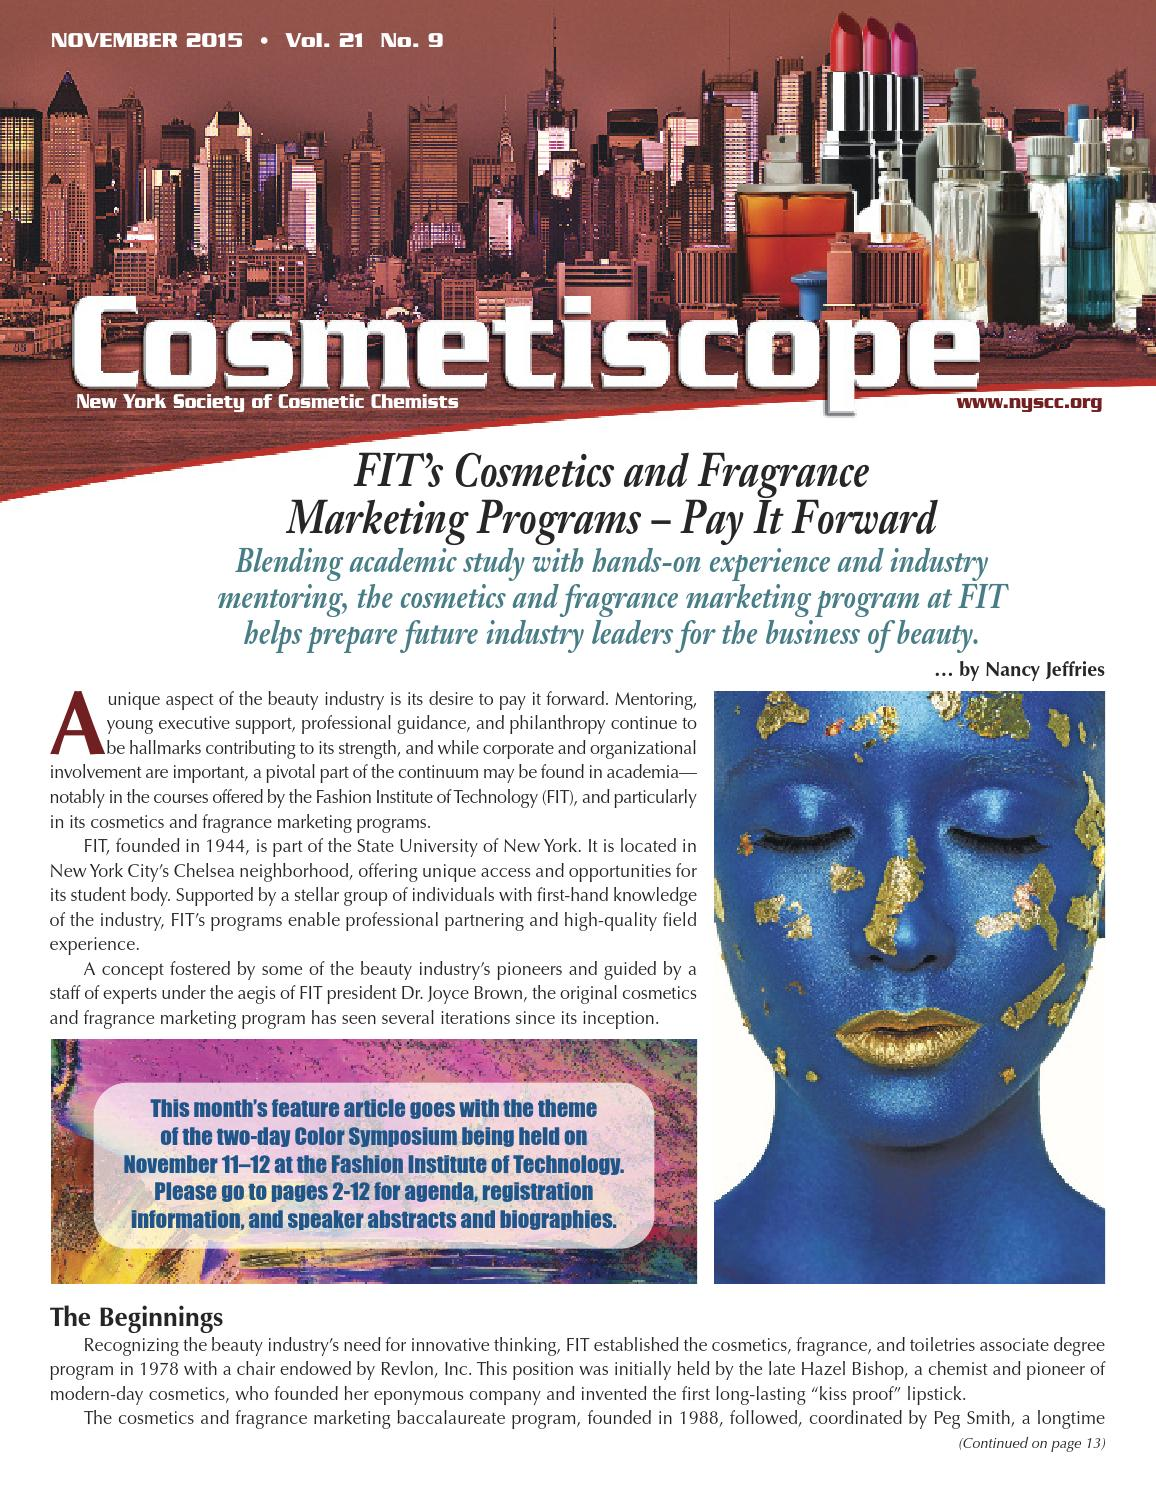 Cosmetiscope - November 2015 by NYSCC Webmaster - issuu